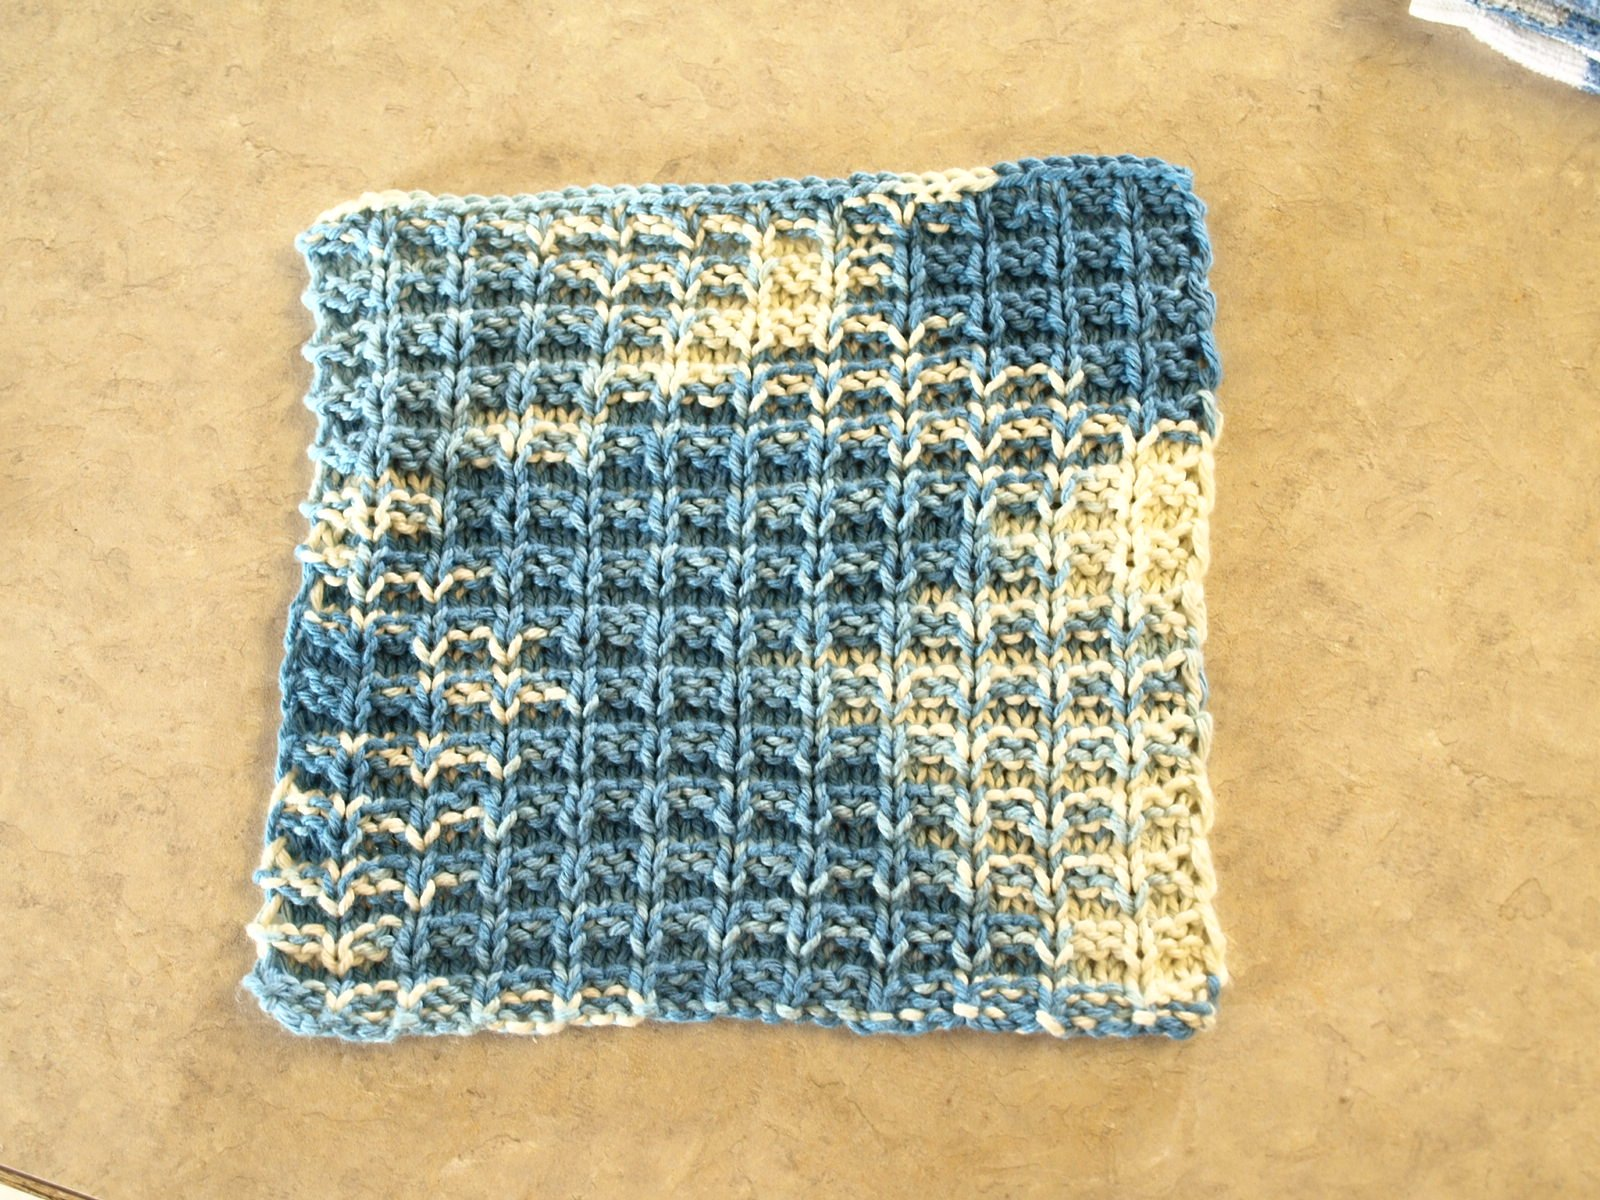 Knit Scrubbie Pattern : The Design Loft: Crochet Dish Scrubbie and knit dishcloth